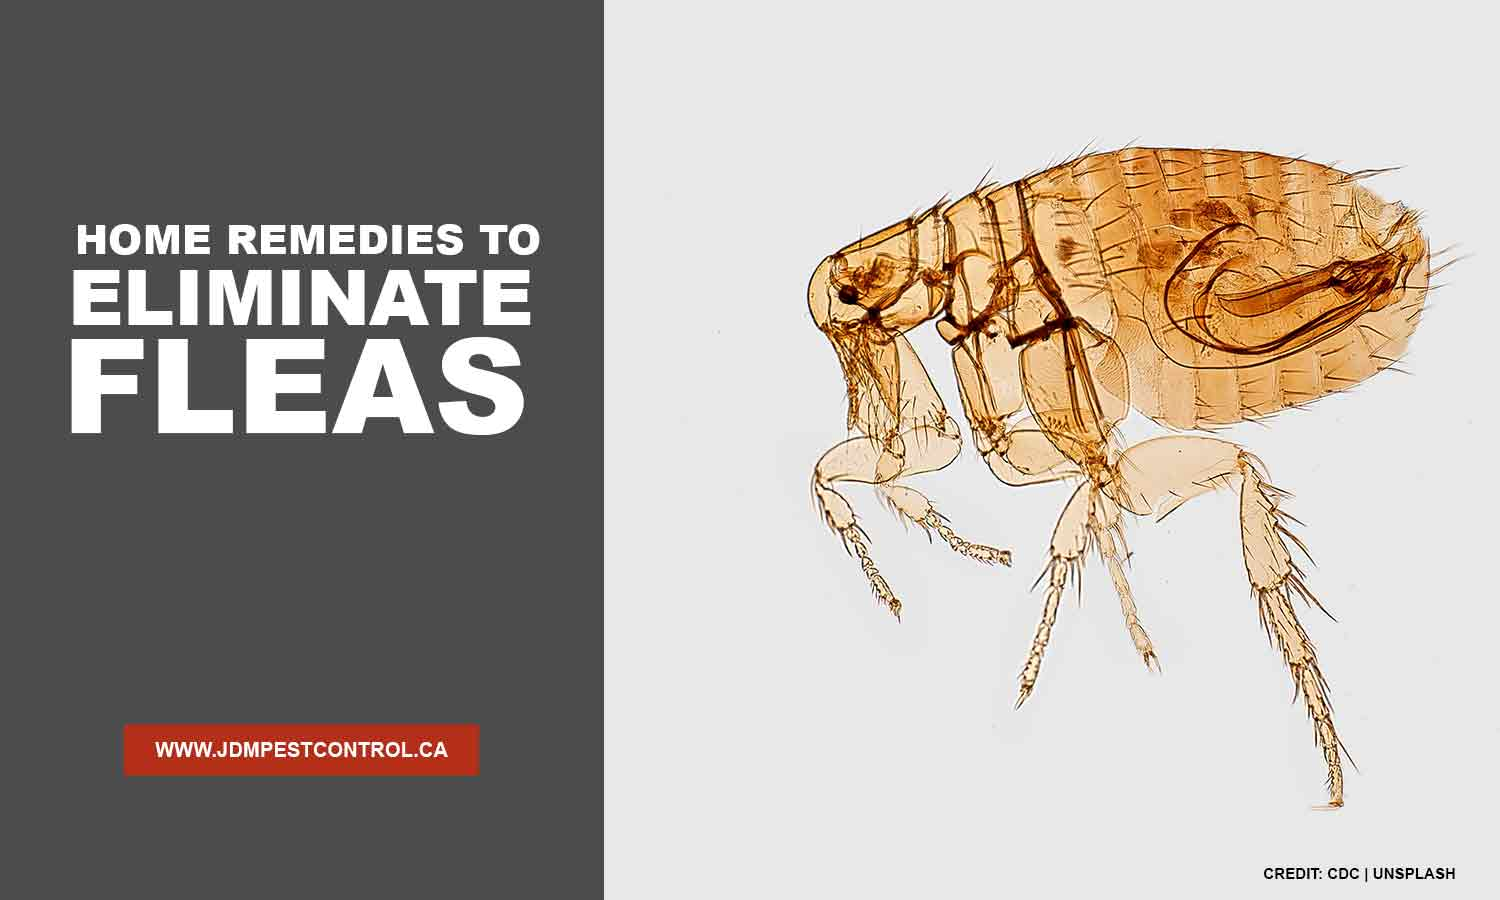 Home Remedies to Eliminate Fleas